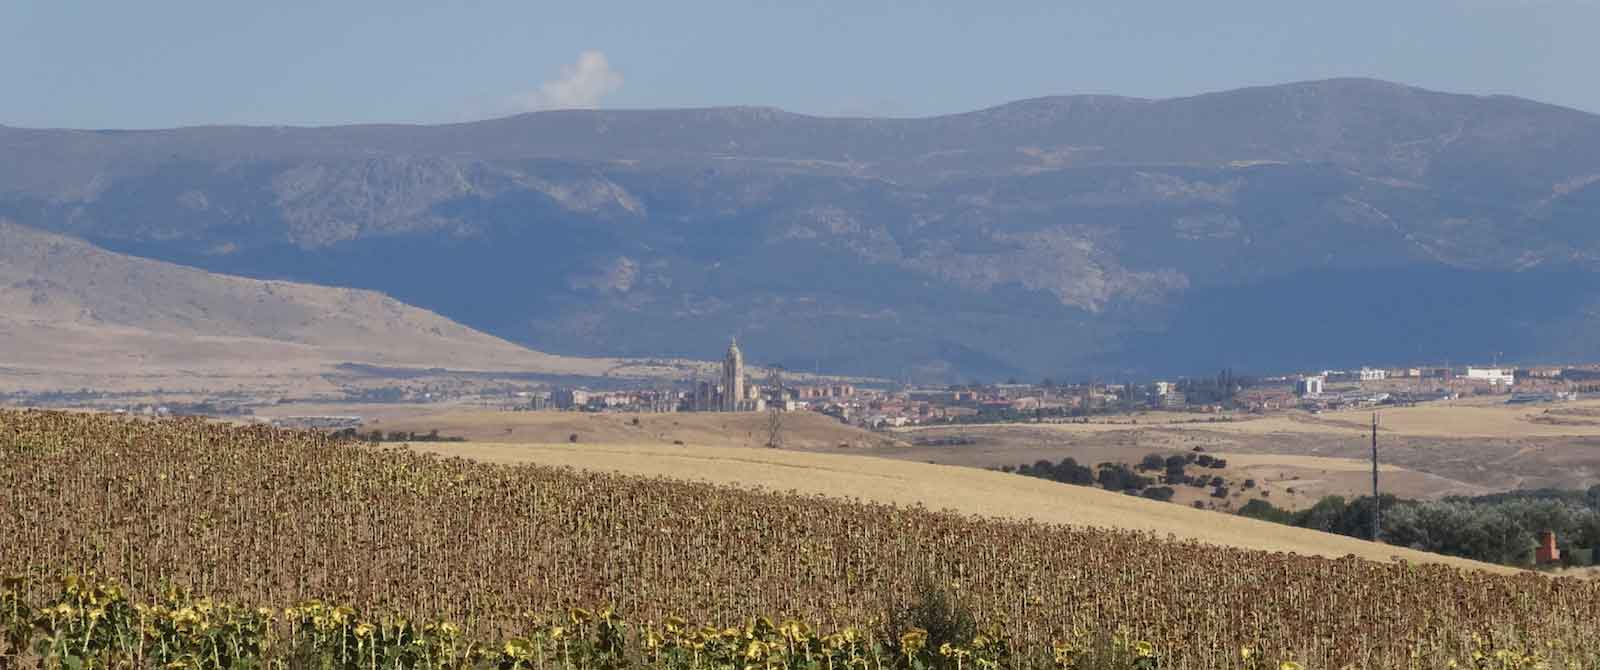 View of Segovia across sunflower fields in Castile y Leon, Spain